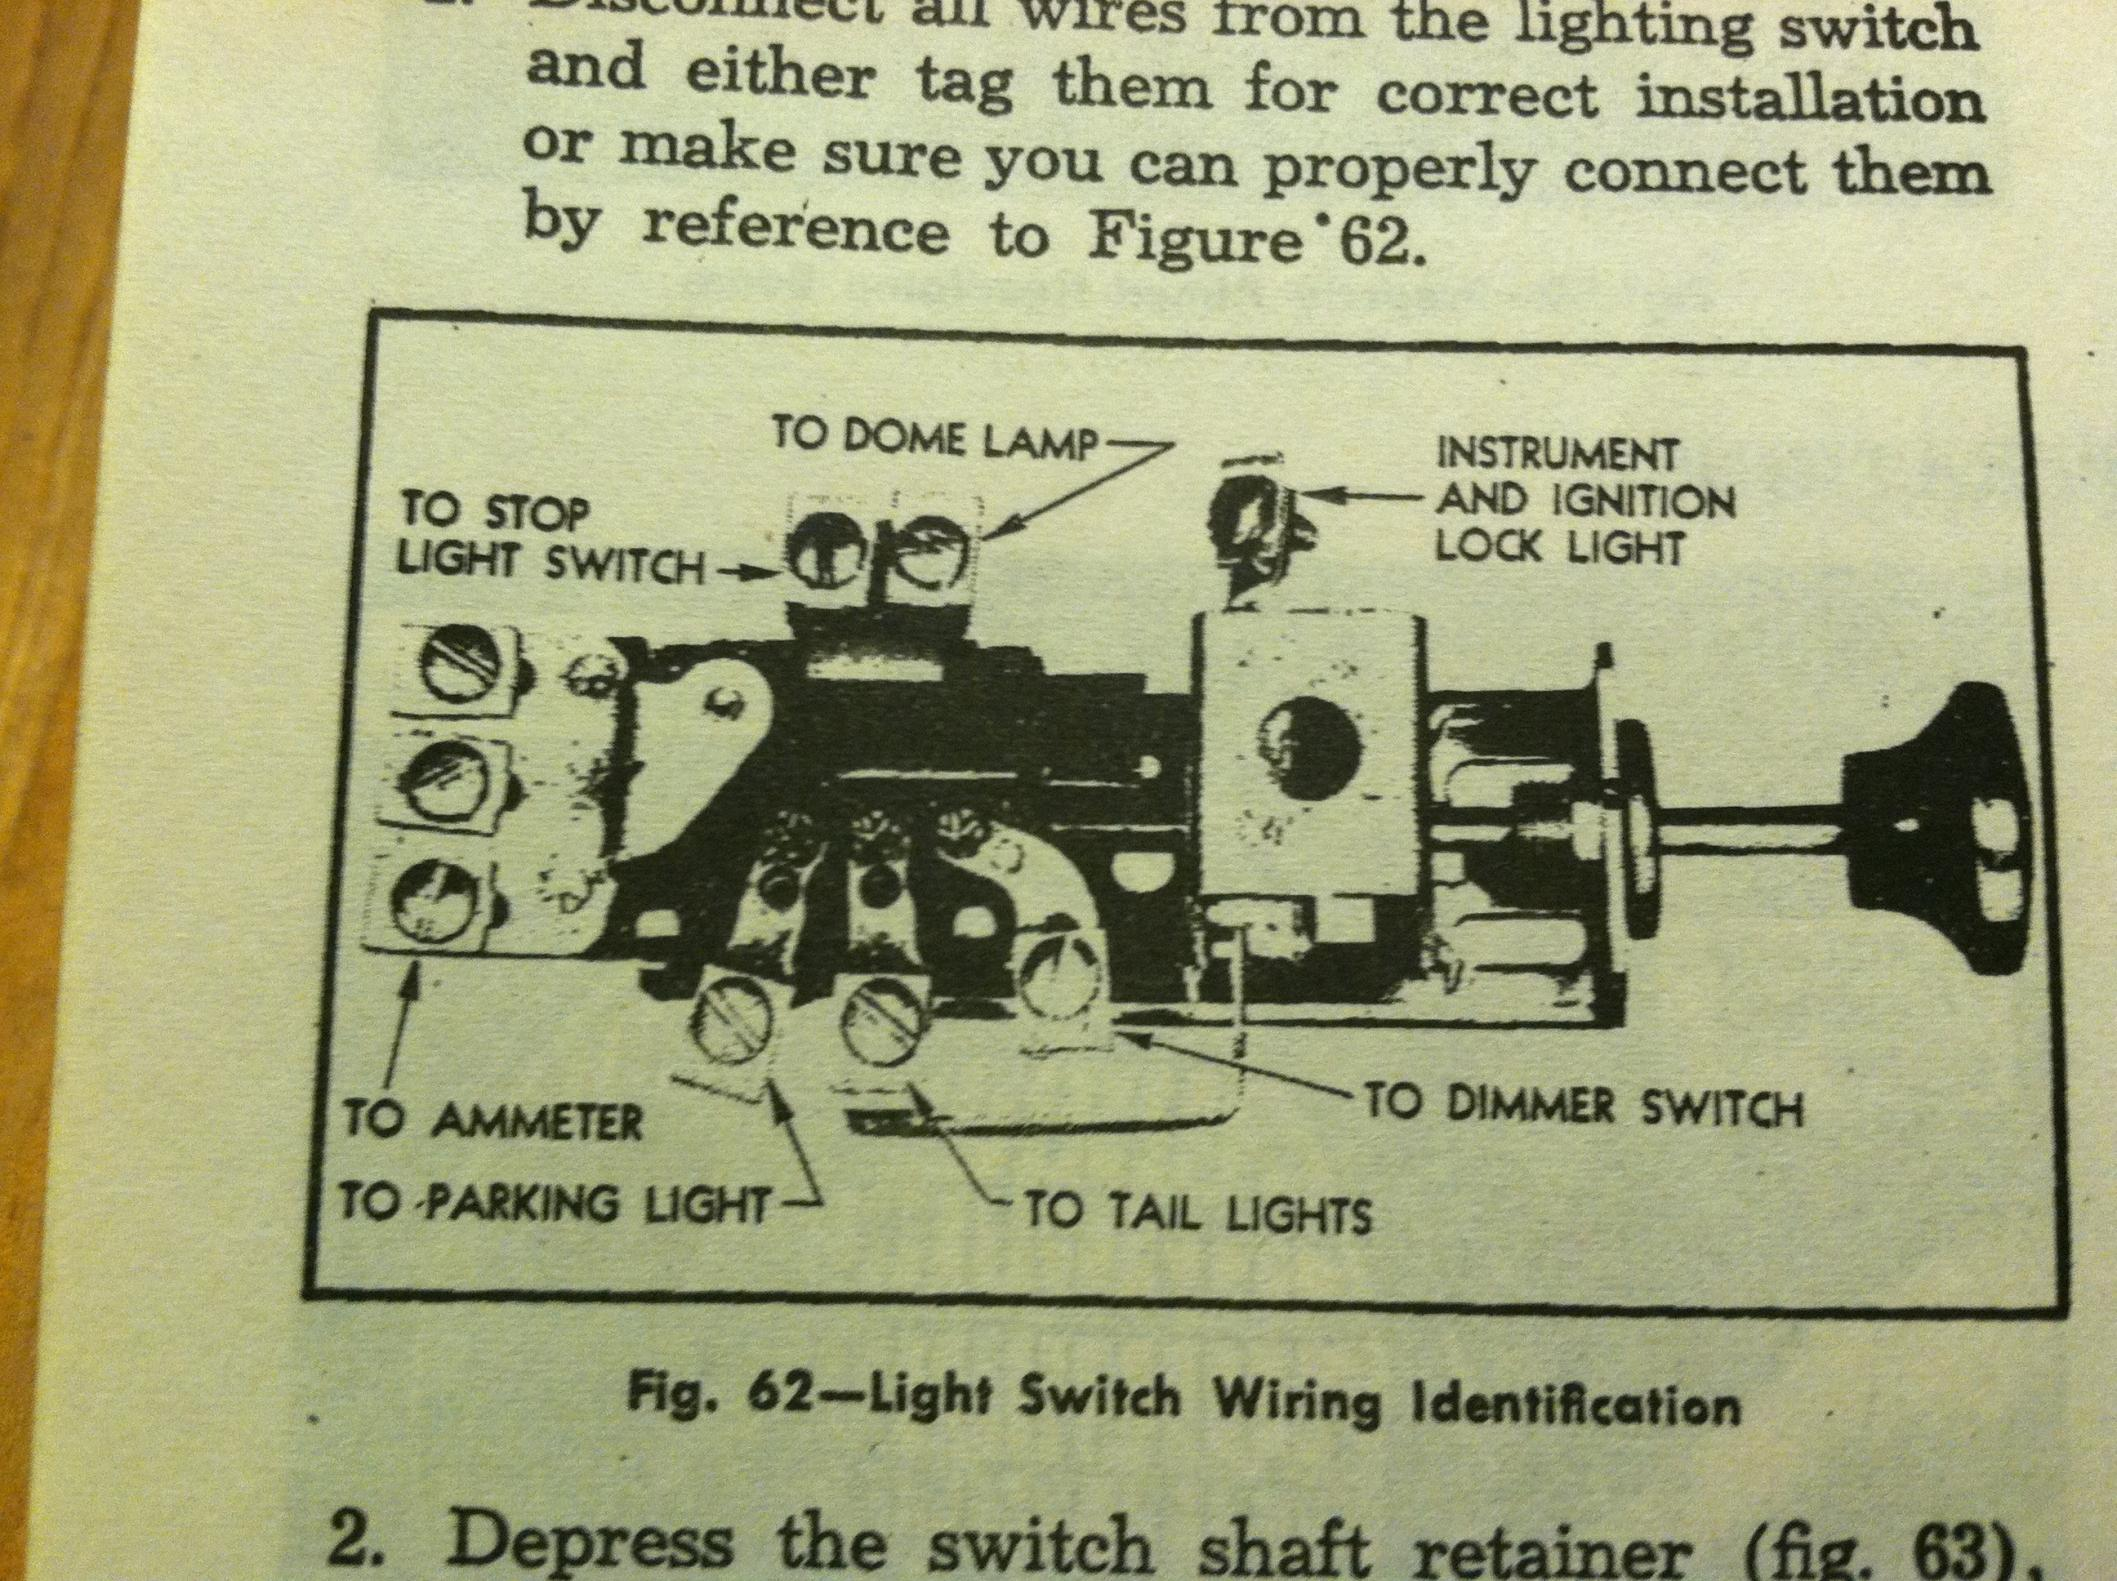 1954 ford headlight switch wiring - 1989 chevy 1500 fuse box diagram for wiring  diagram schematics  wiring diagram schematics